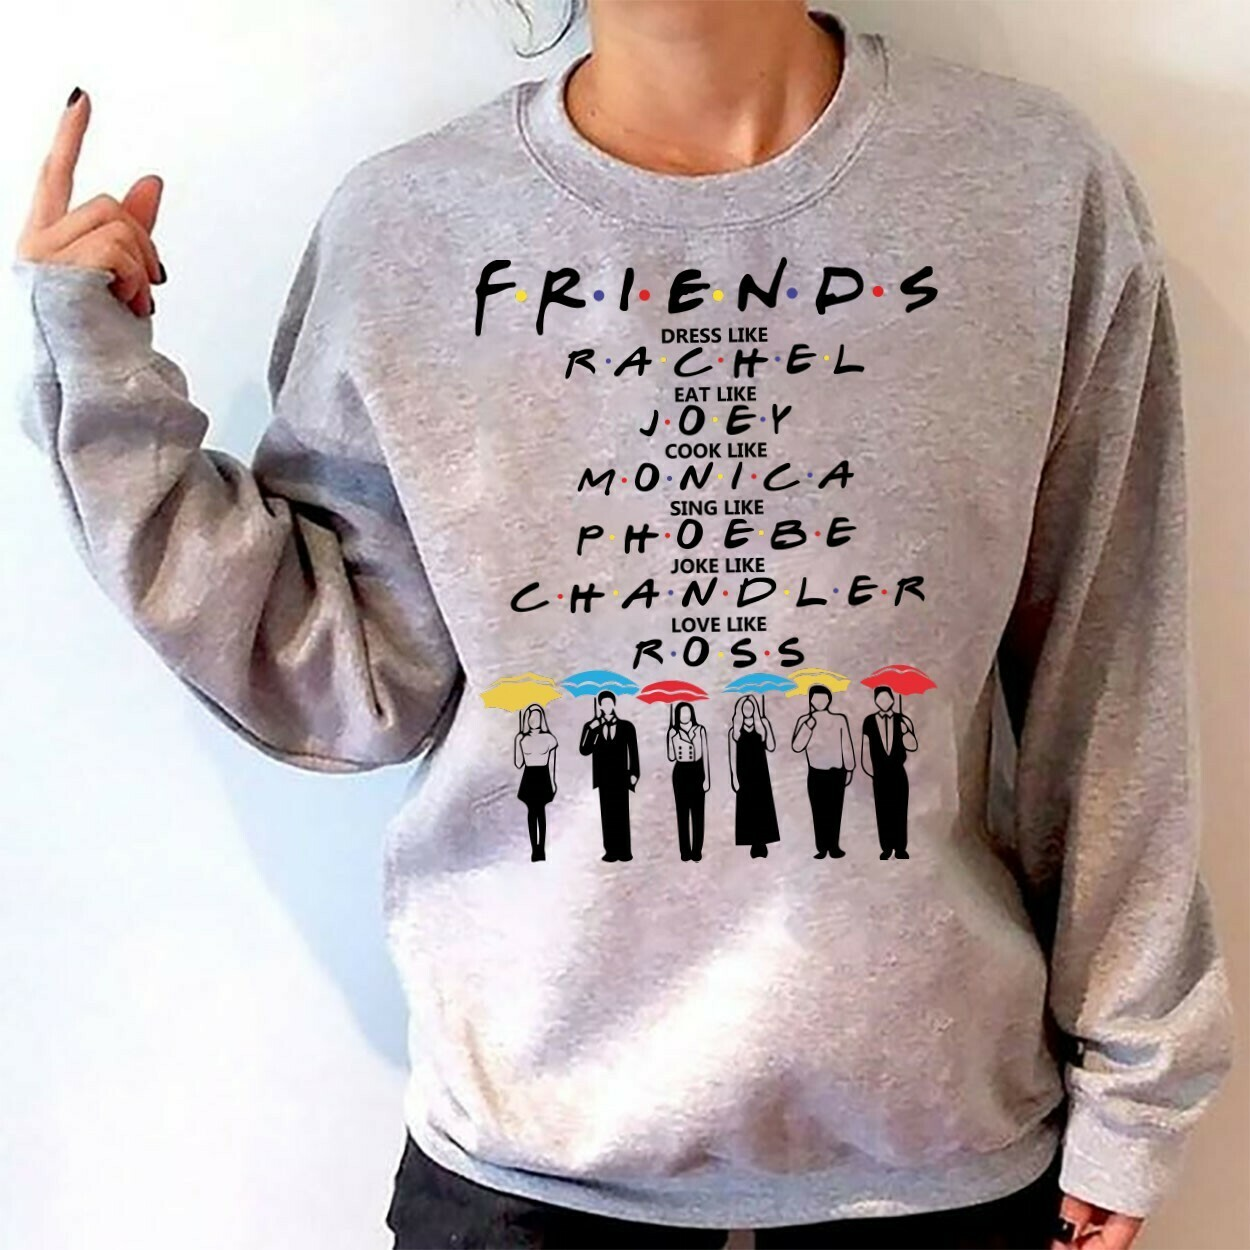 Friends Sinister Friends TV Show Dress Like Rachel Eat like Joey Cook like Monica Sing like Phoebe Joke like Chandler Love like Ross T Shirt Long Sleeve Sweatshirt Hoodie Jolly Family Gifts